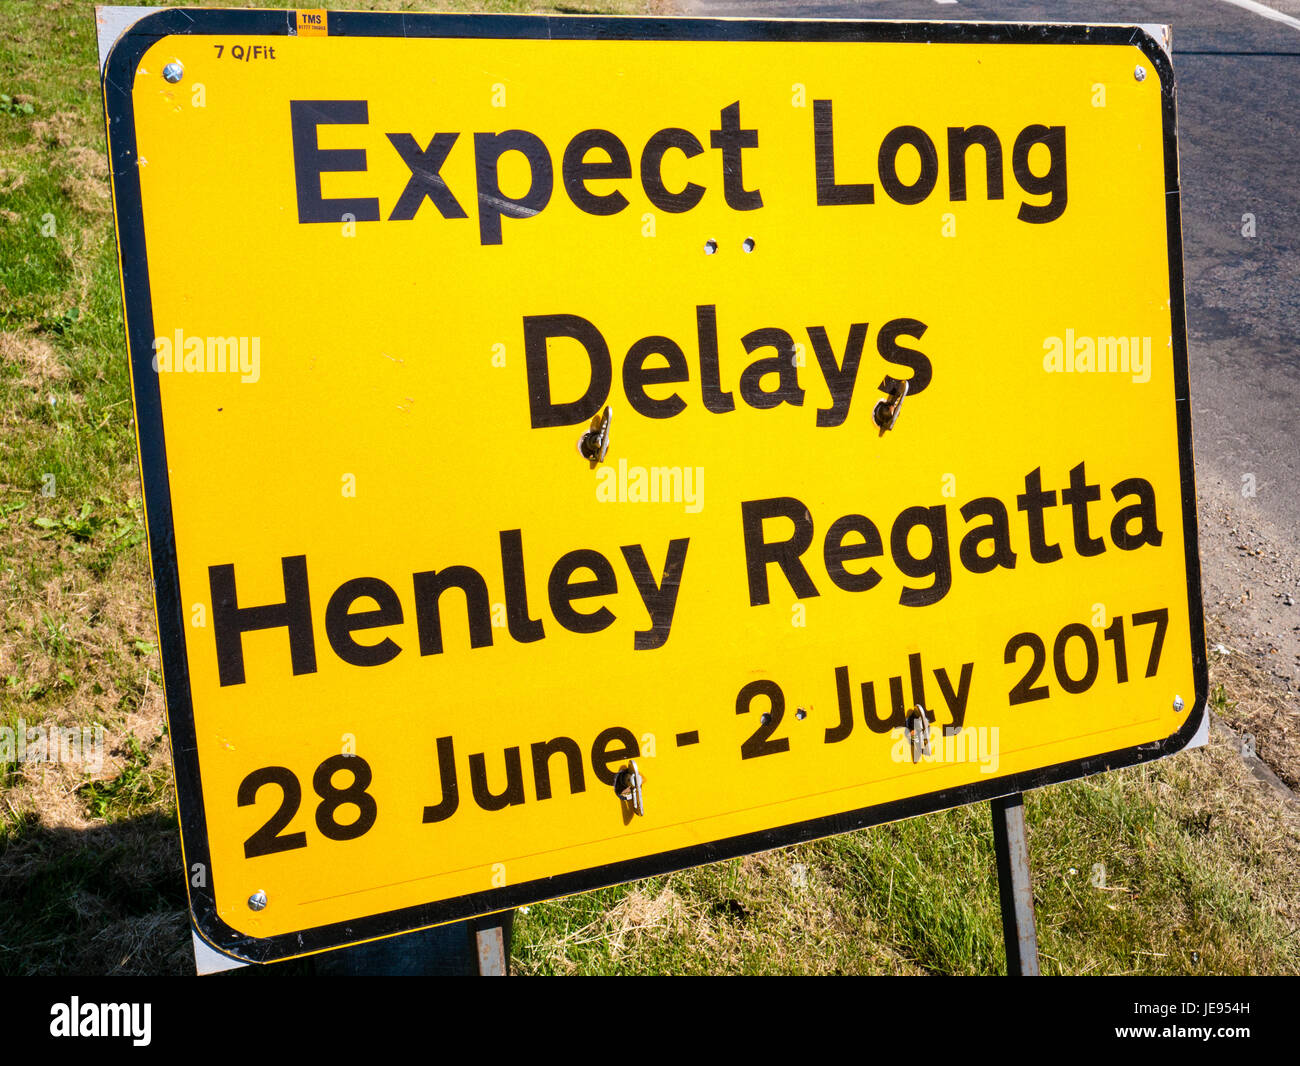 Expect Long Delays Road Sign, Henley-on-Thames, Oxfordshire, England - Stock Image